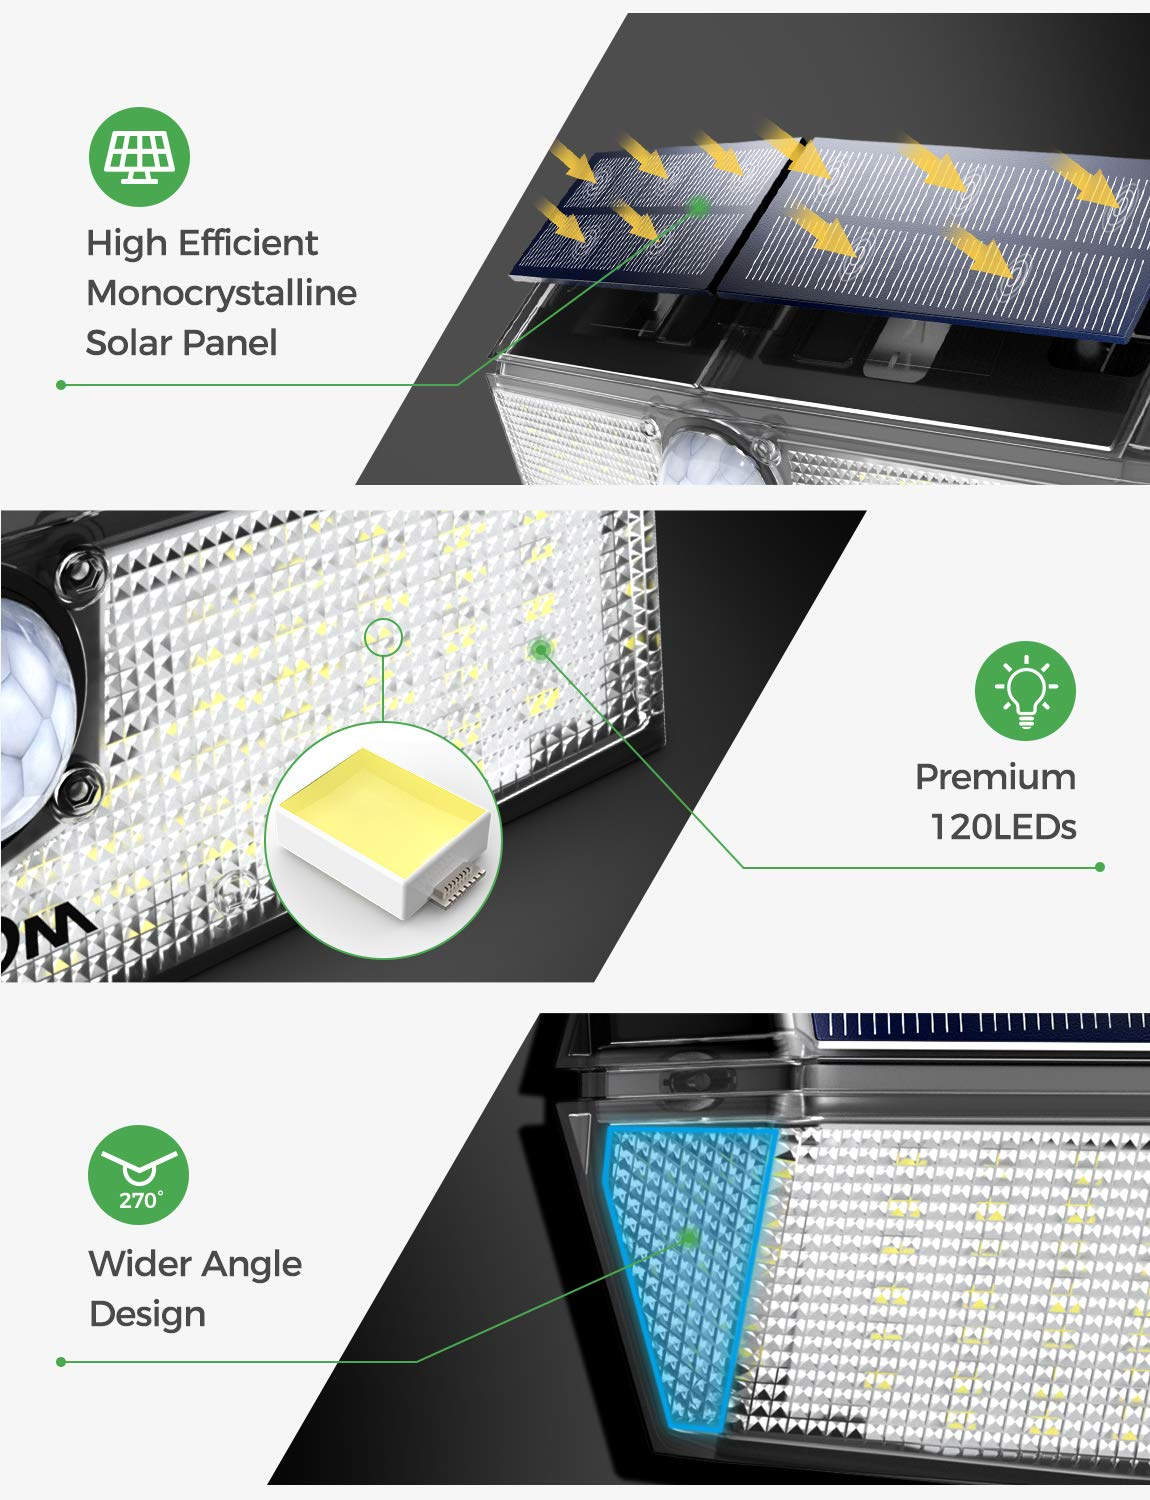 LITOM Solar Lights Outdoor,120 LED Solar Motion Lights with 3 Modes, 270 Wide Angle, IP67 Waterproof, Easy-to-Install Security Lights for Front Door, Yard,Garage, Deck, Fence-2 Pack